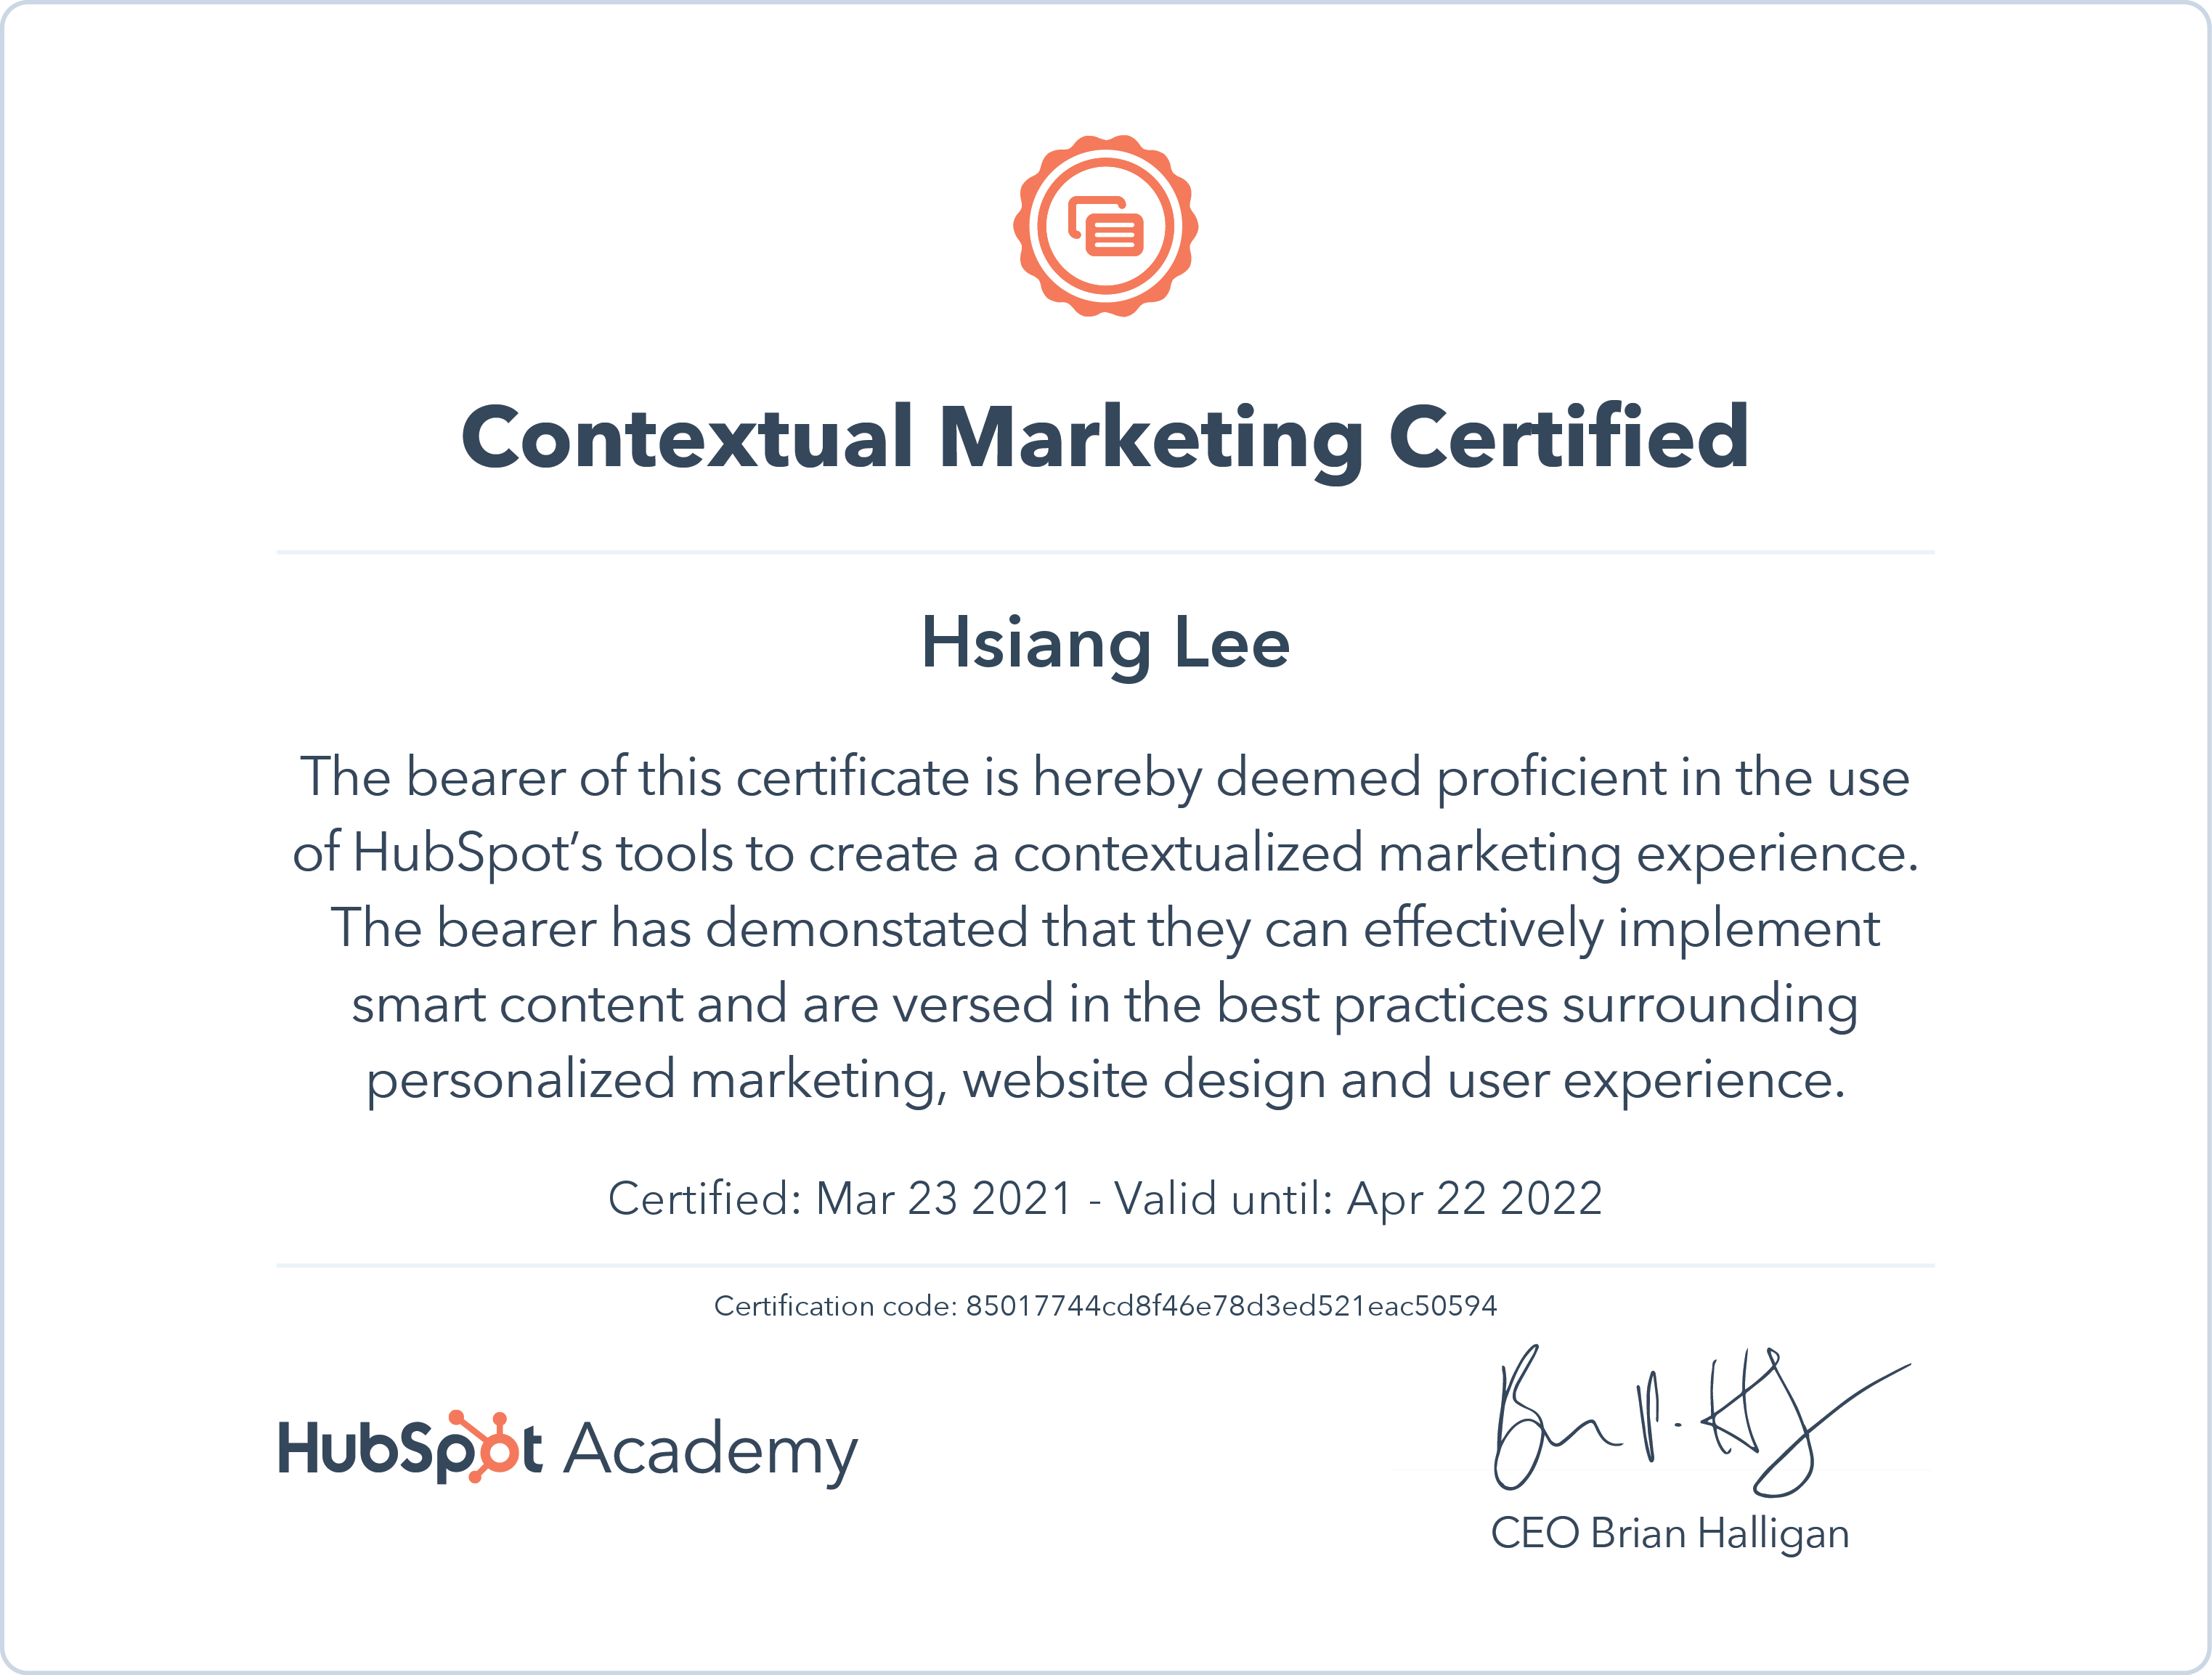 contextual-marketing-certified_hsiang